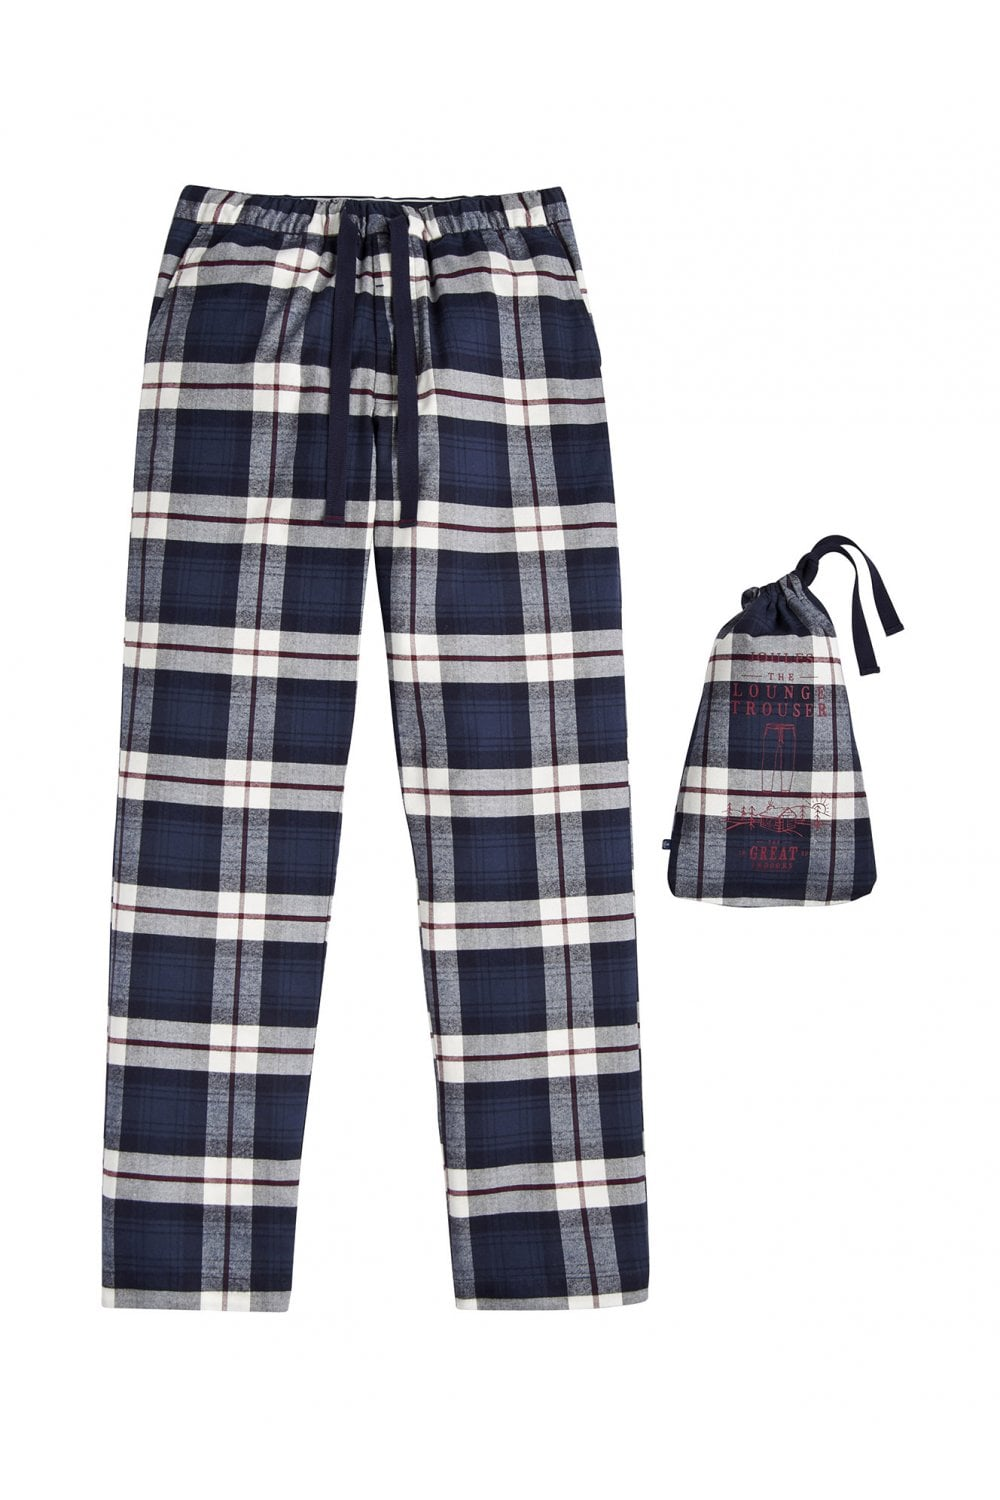 Joules Mens The Sleeper Checked Lounge Trousers - Blue Check ... d94dddcf6